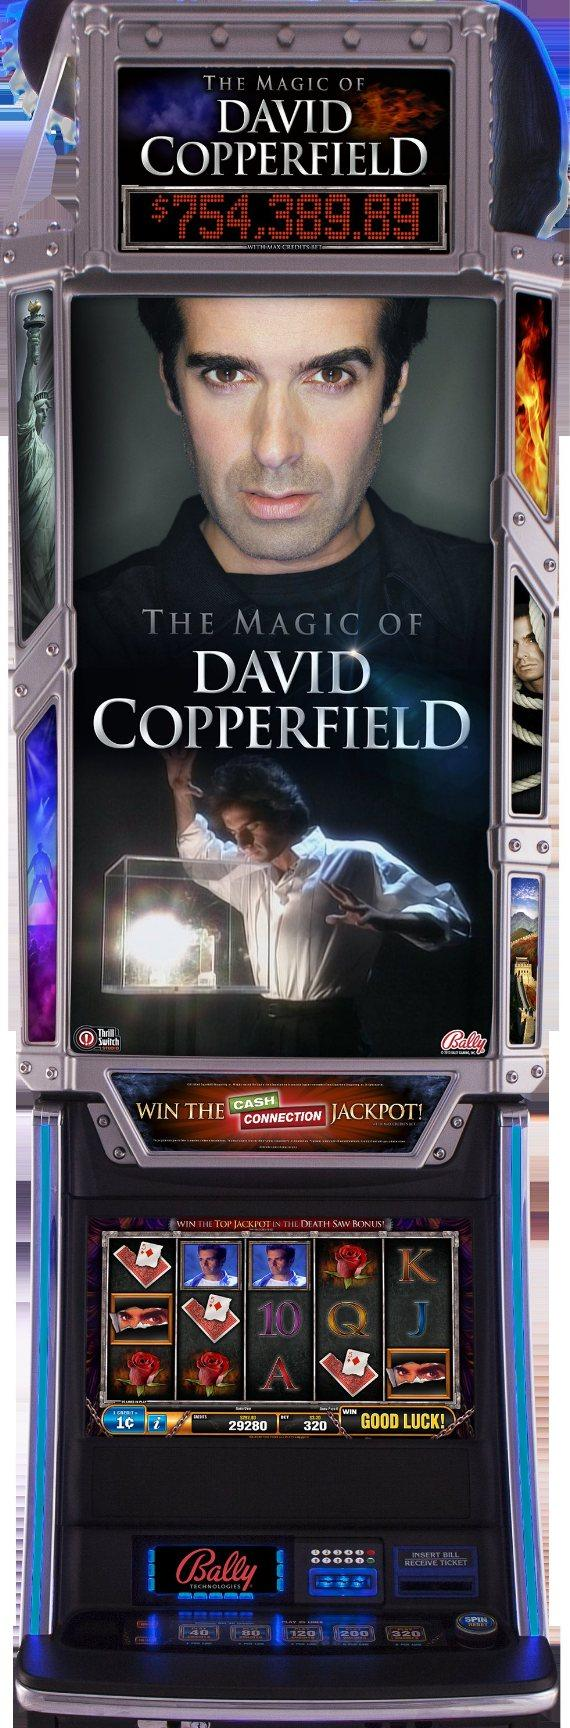 illusionist david copperfield unveils the magic of david bally technologies slot machine the magic of david copperfield